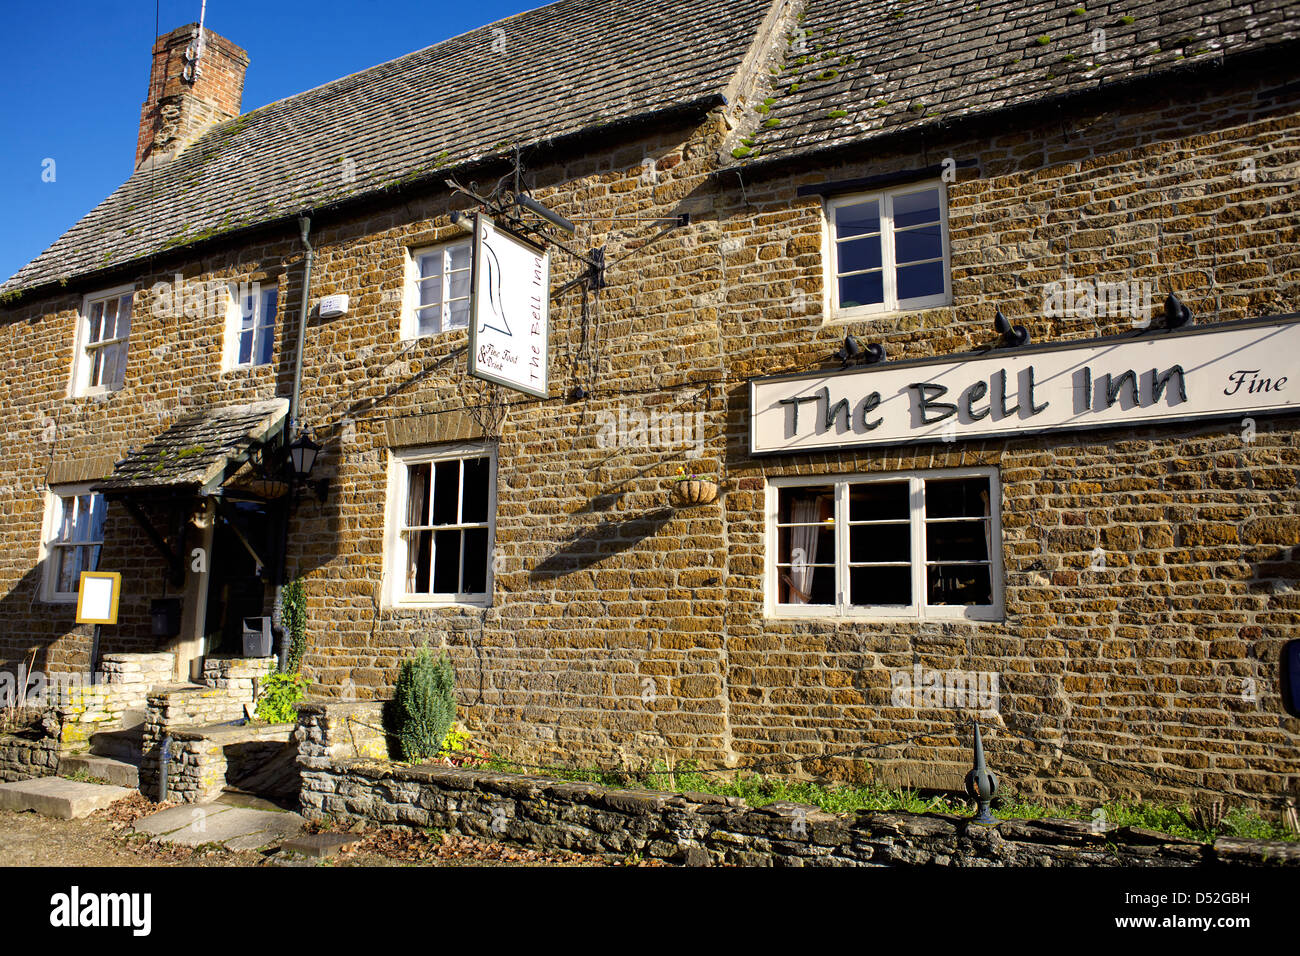 The Bell Inn Lower Heyford Oxfordshire Oxon England UK GB Lower Heyford village pubs pub public house English British - Stock Image